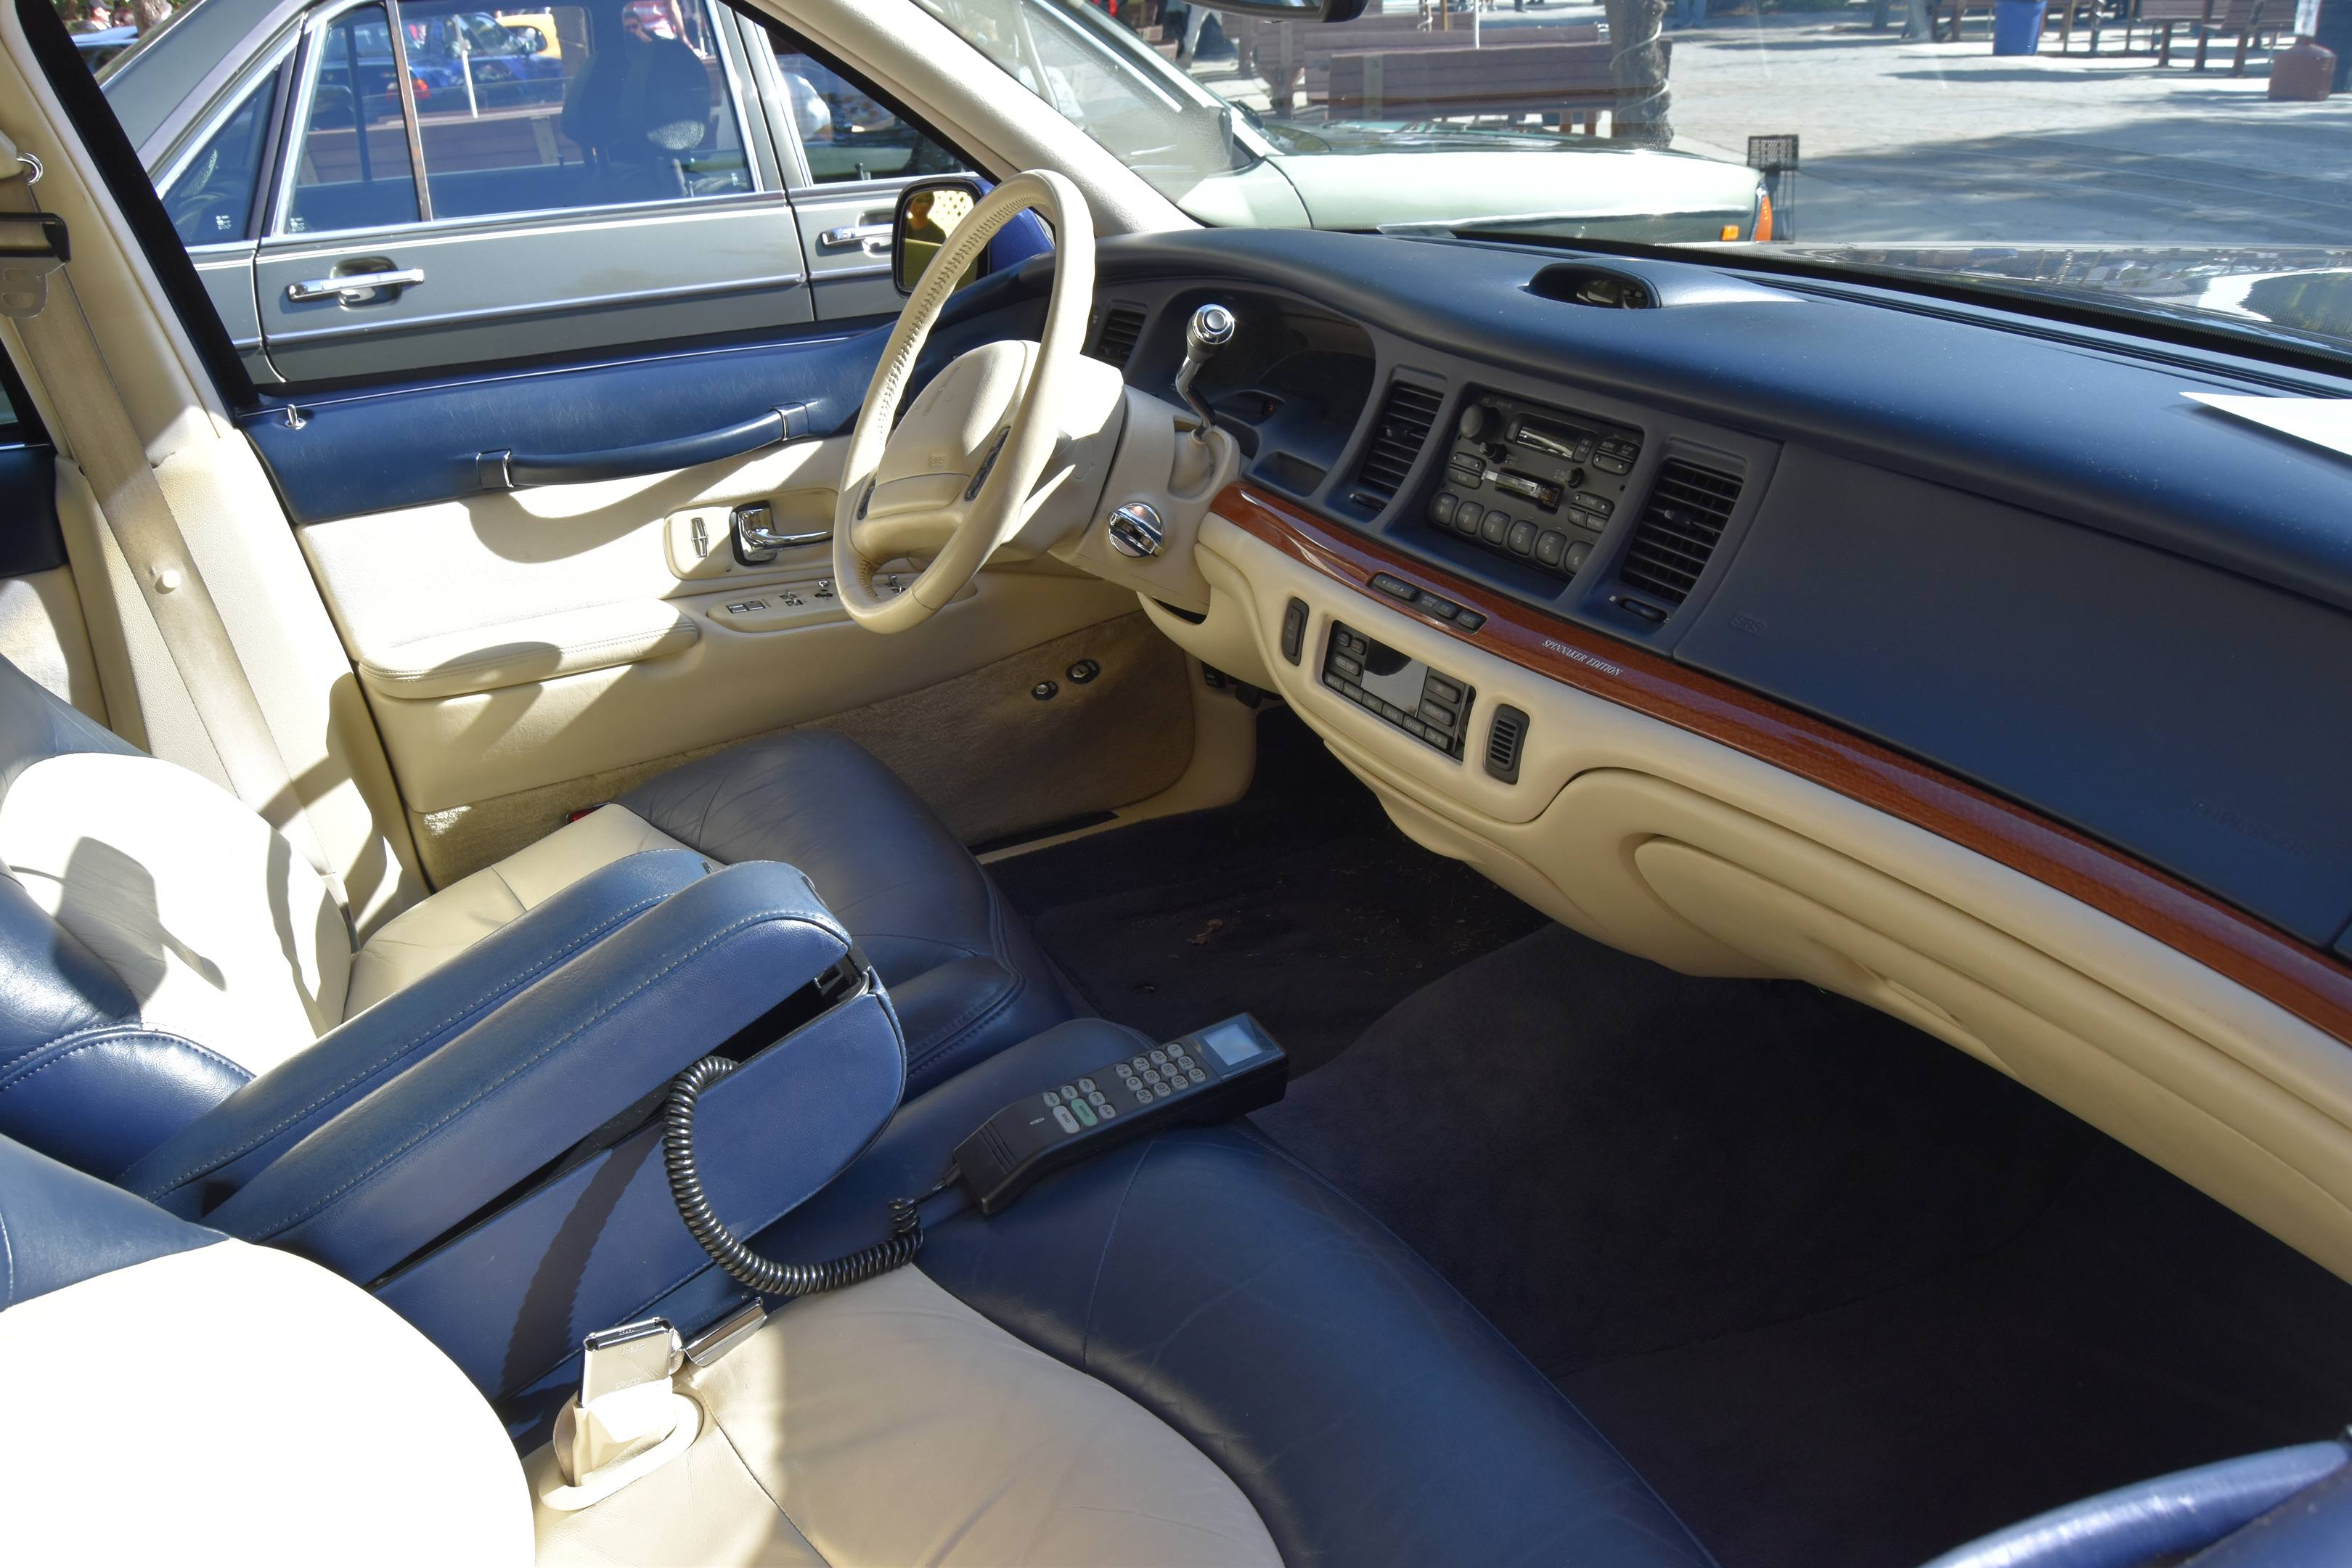 1995 Lincoln Town Car Signature Spinnaker Edition interior